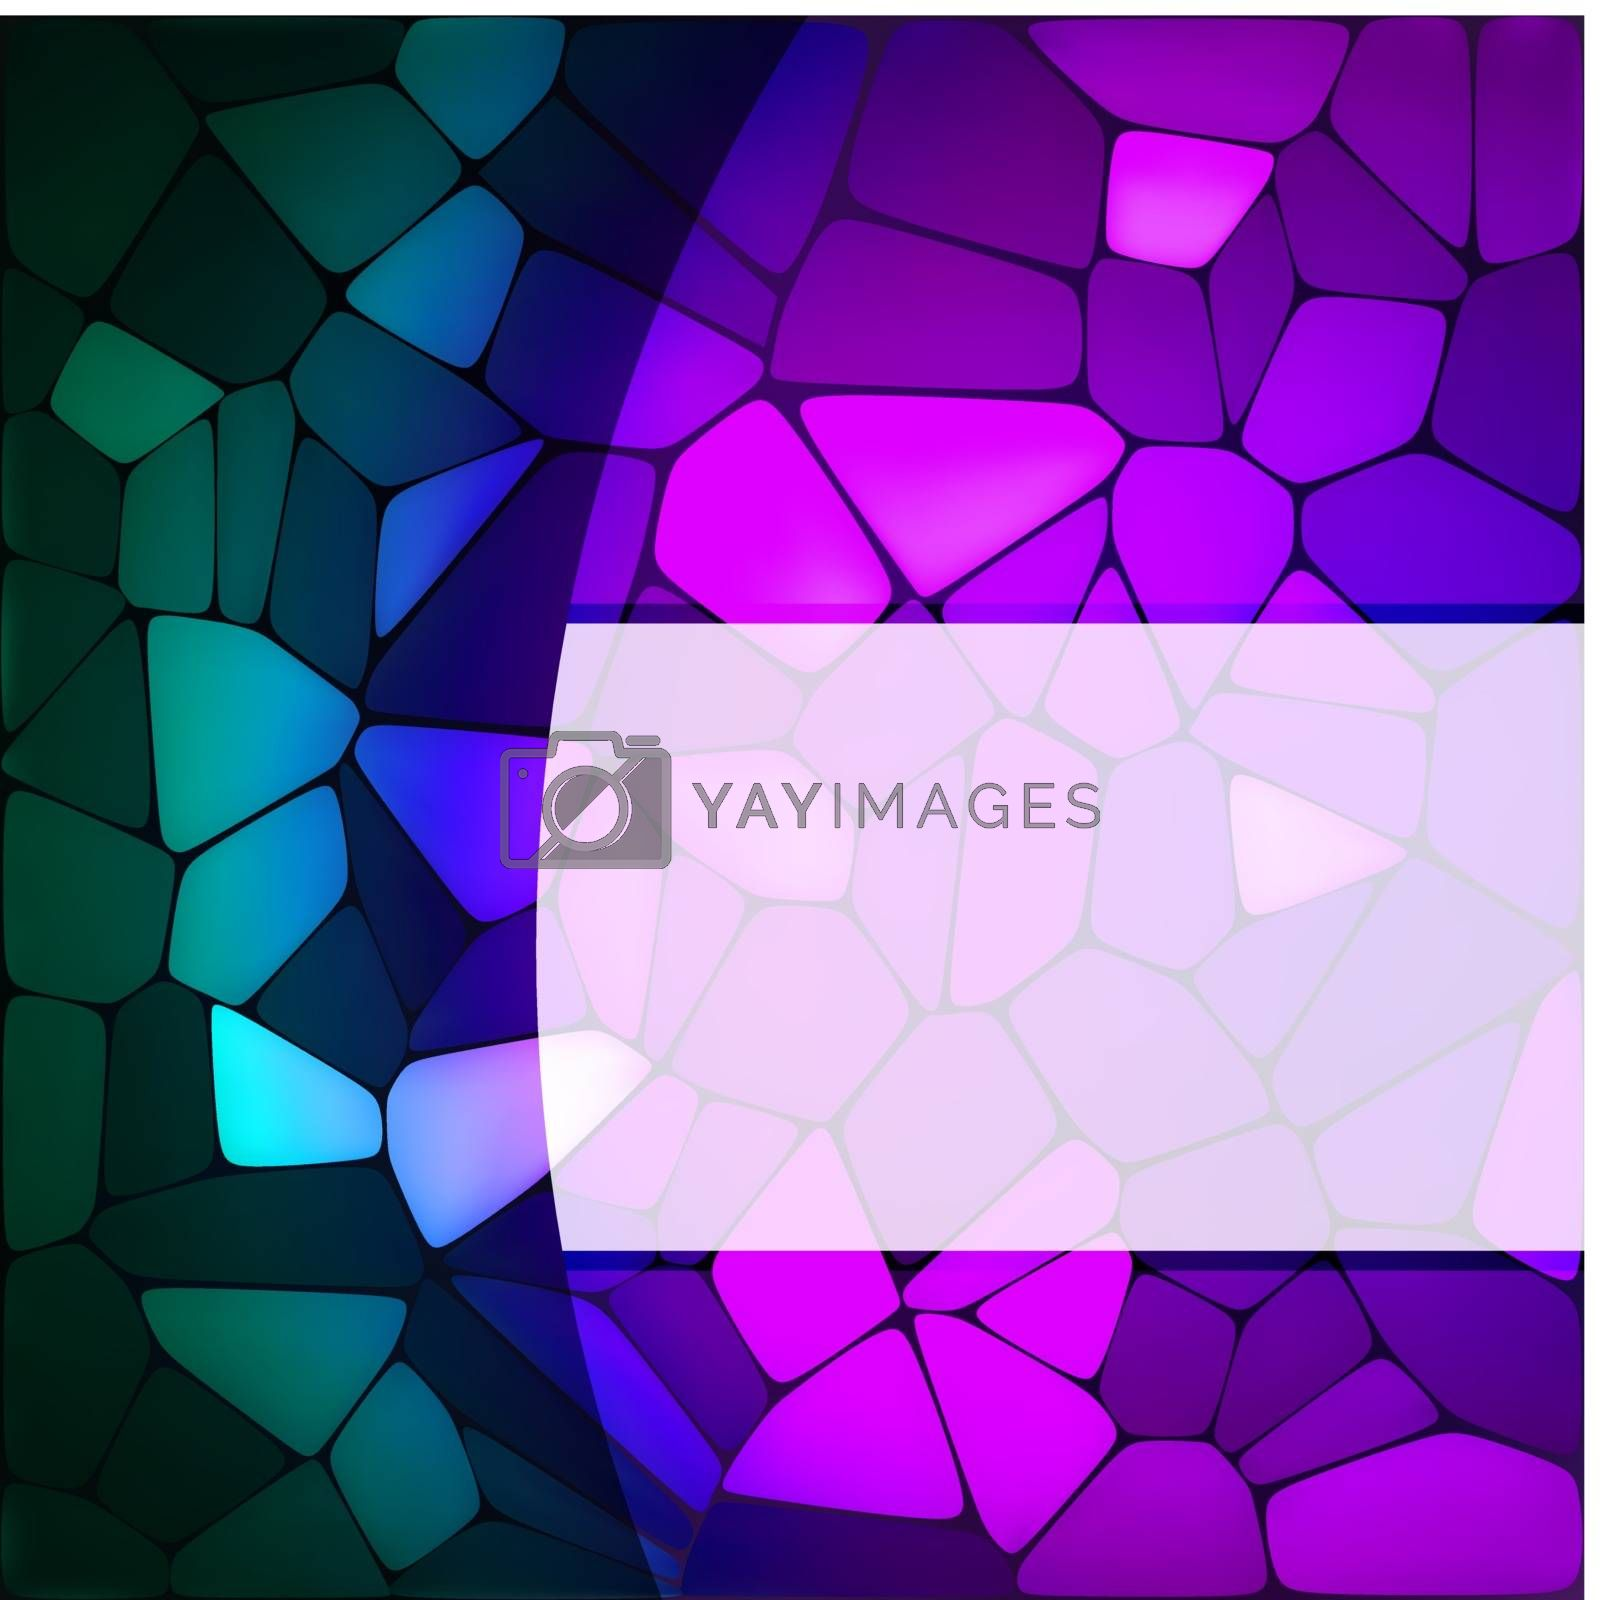 Royalty free image of Stained glass design template. EPS 8 by Petrov_Vladimir